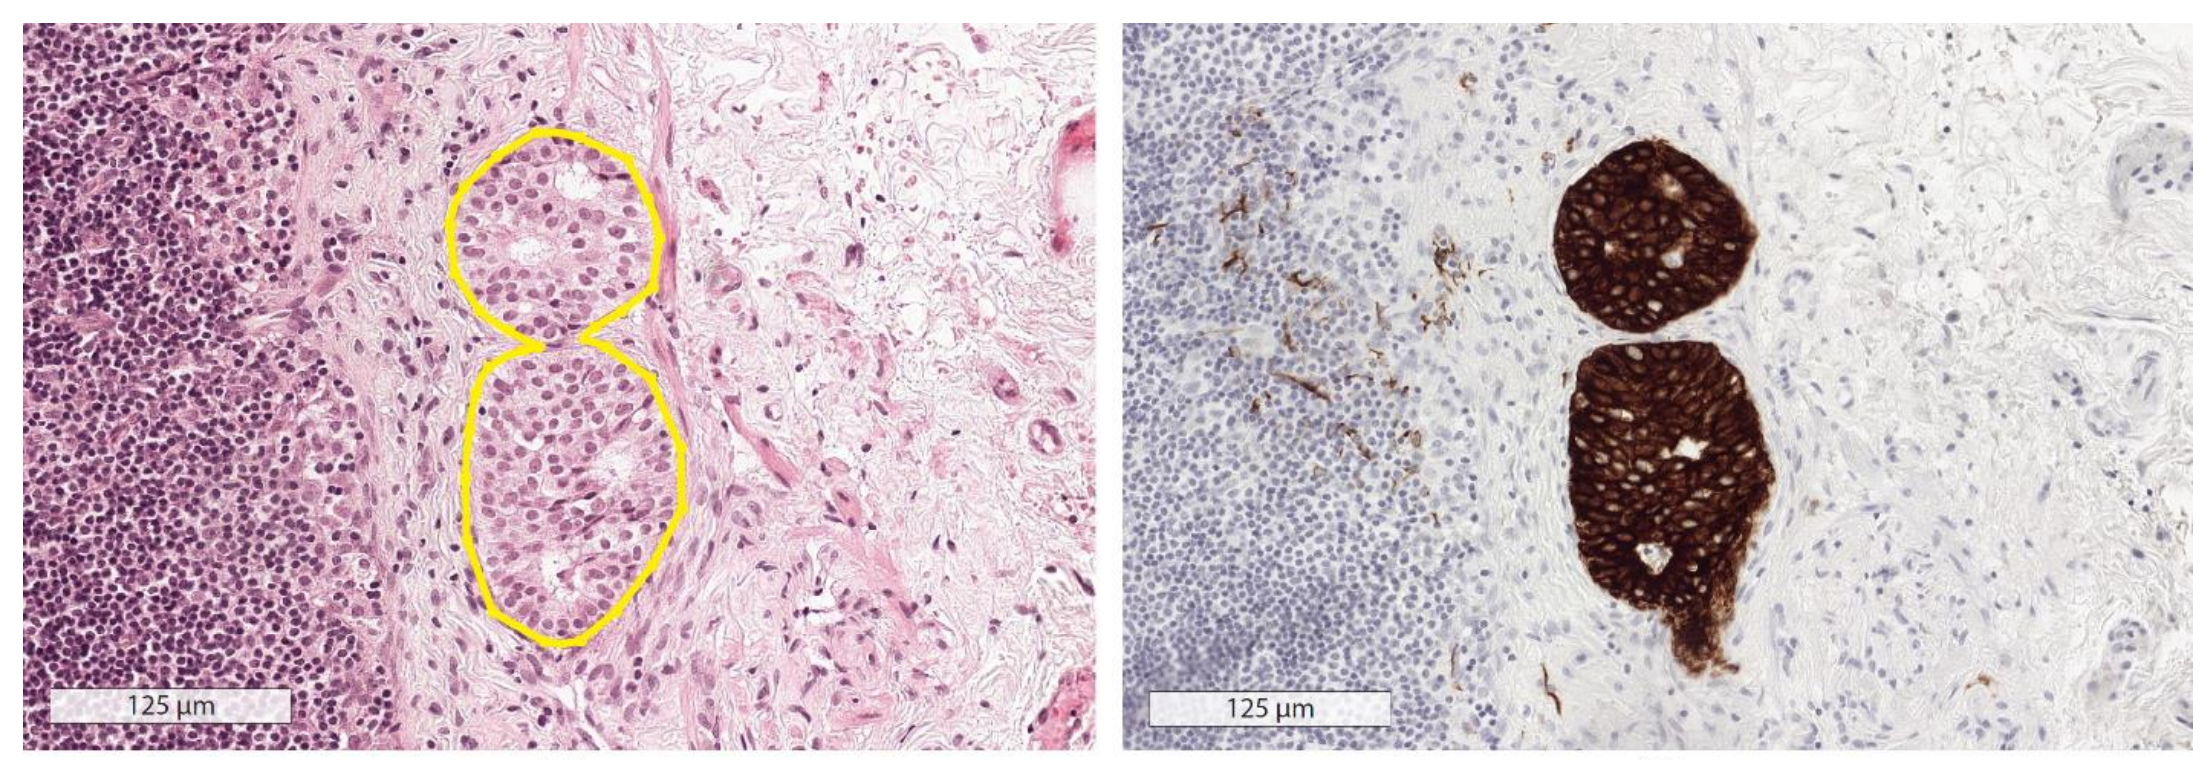 """Left: Hemotoxylin and eosin stain shows area of potential metastatic disease. Right: Immunohistochemical stain gives """"gold standard"""" evidence of metastatic disease. Pathologists and AI agents only had access to H&E images."""